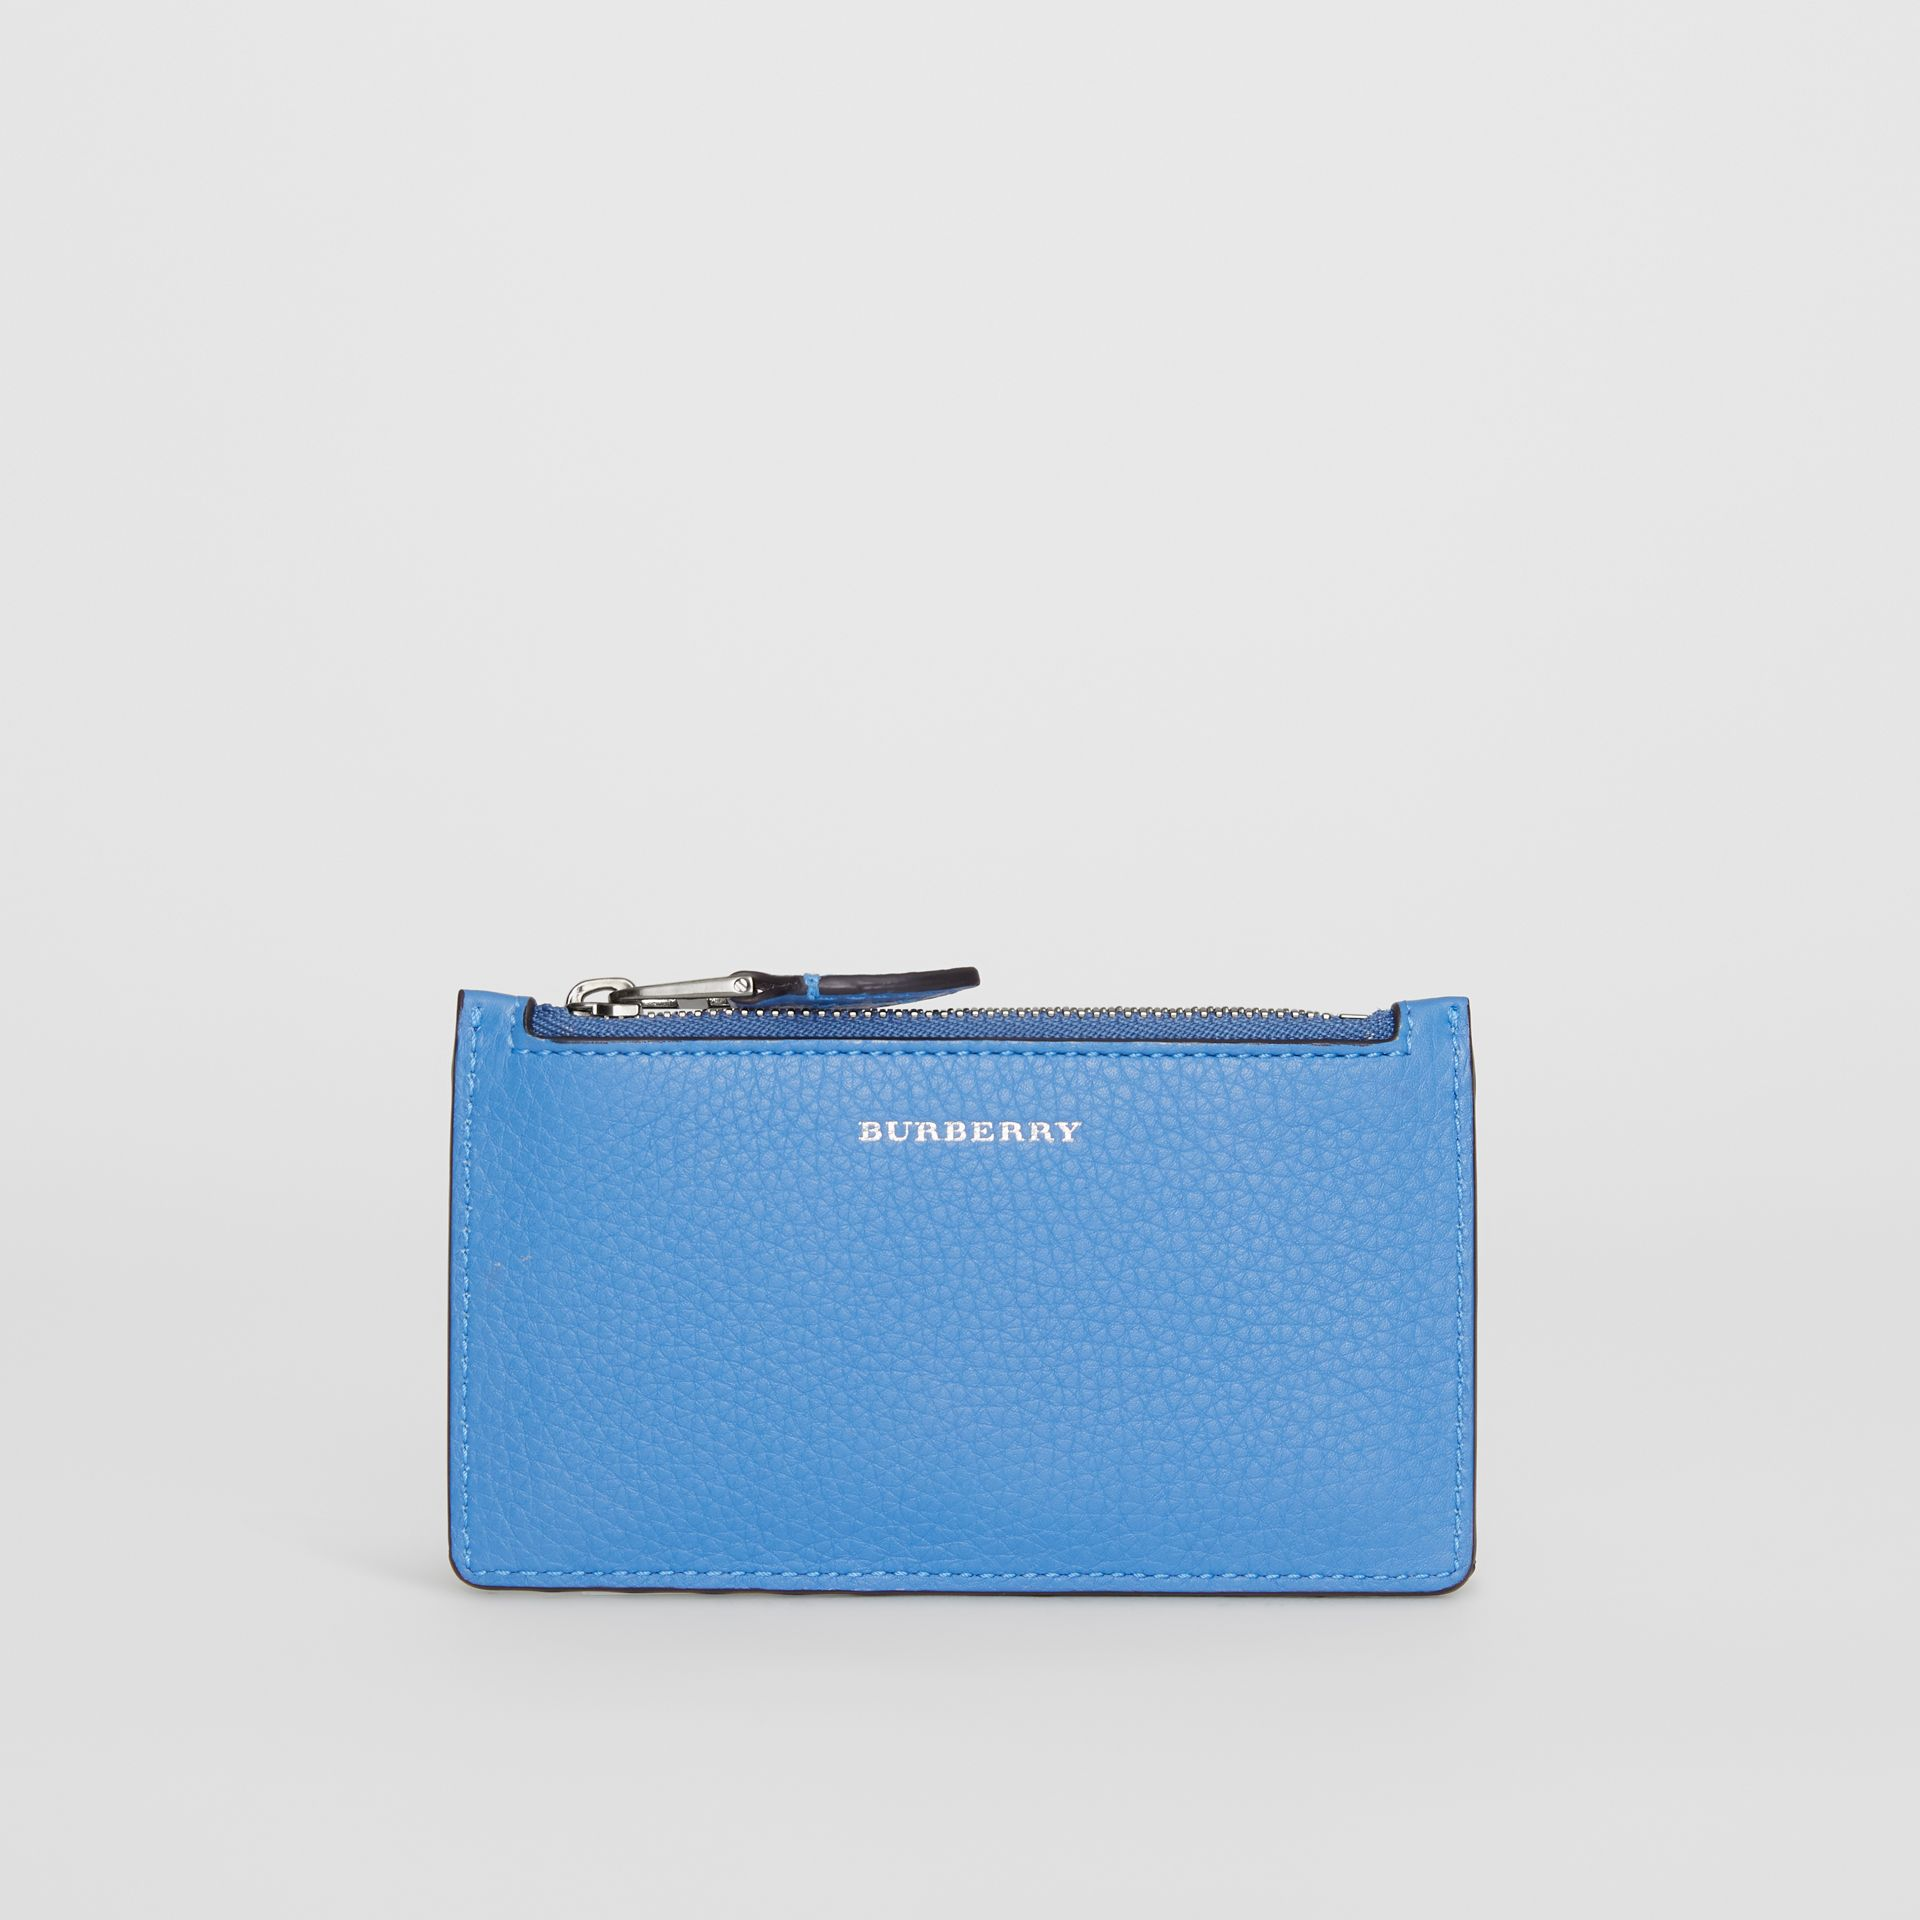 Two-tone Leather Card Case in Hydrangea Blue - Women | Burberry - gallery image 2